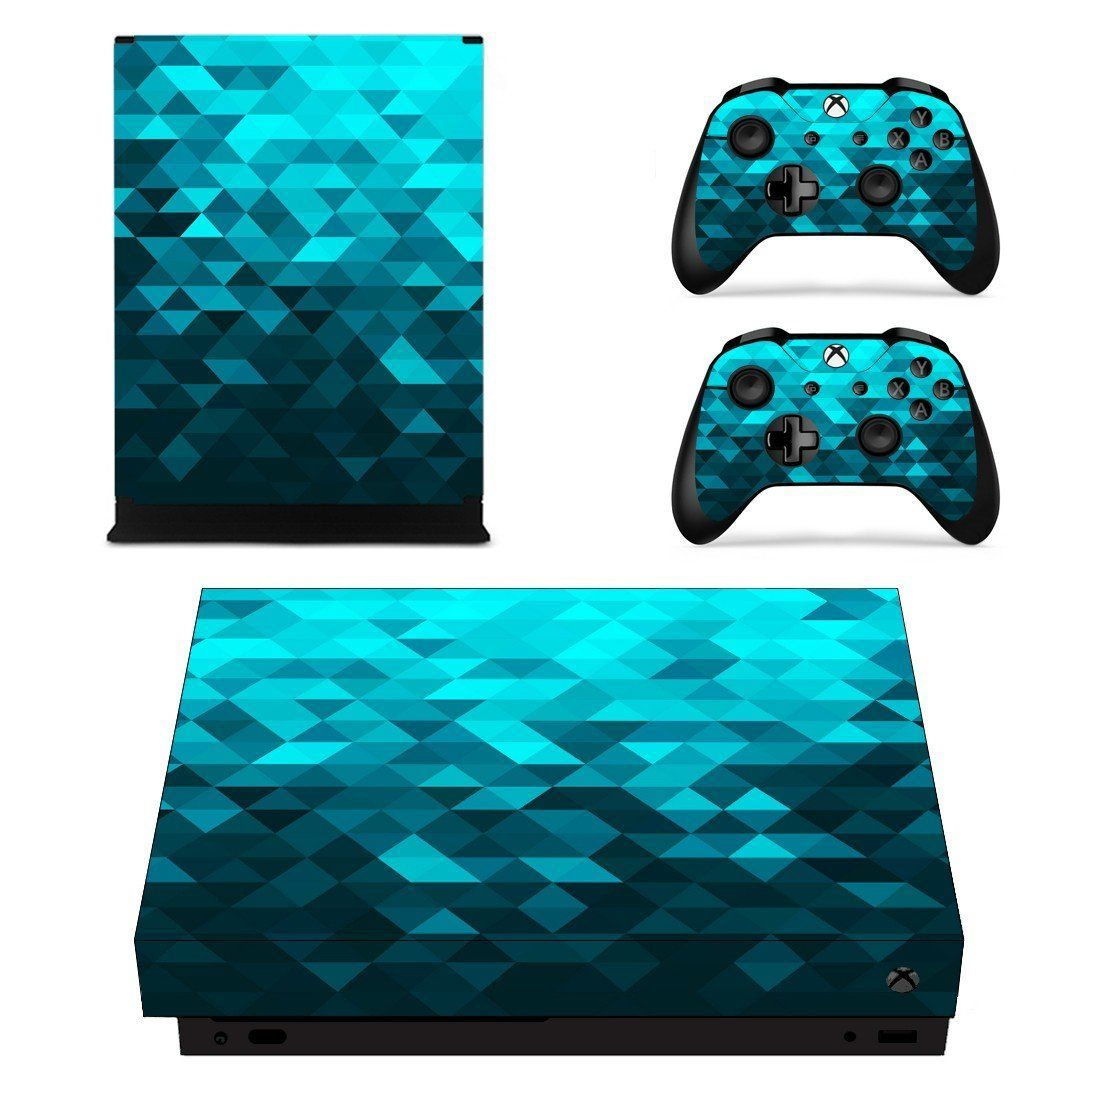 Blue Prizma Effect Xbox One X Skin Decal For Console And 2 Controllers Xbox One Xbox Console